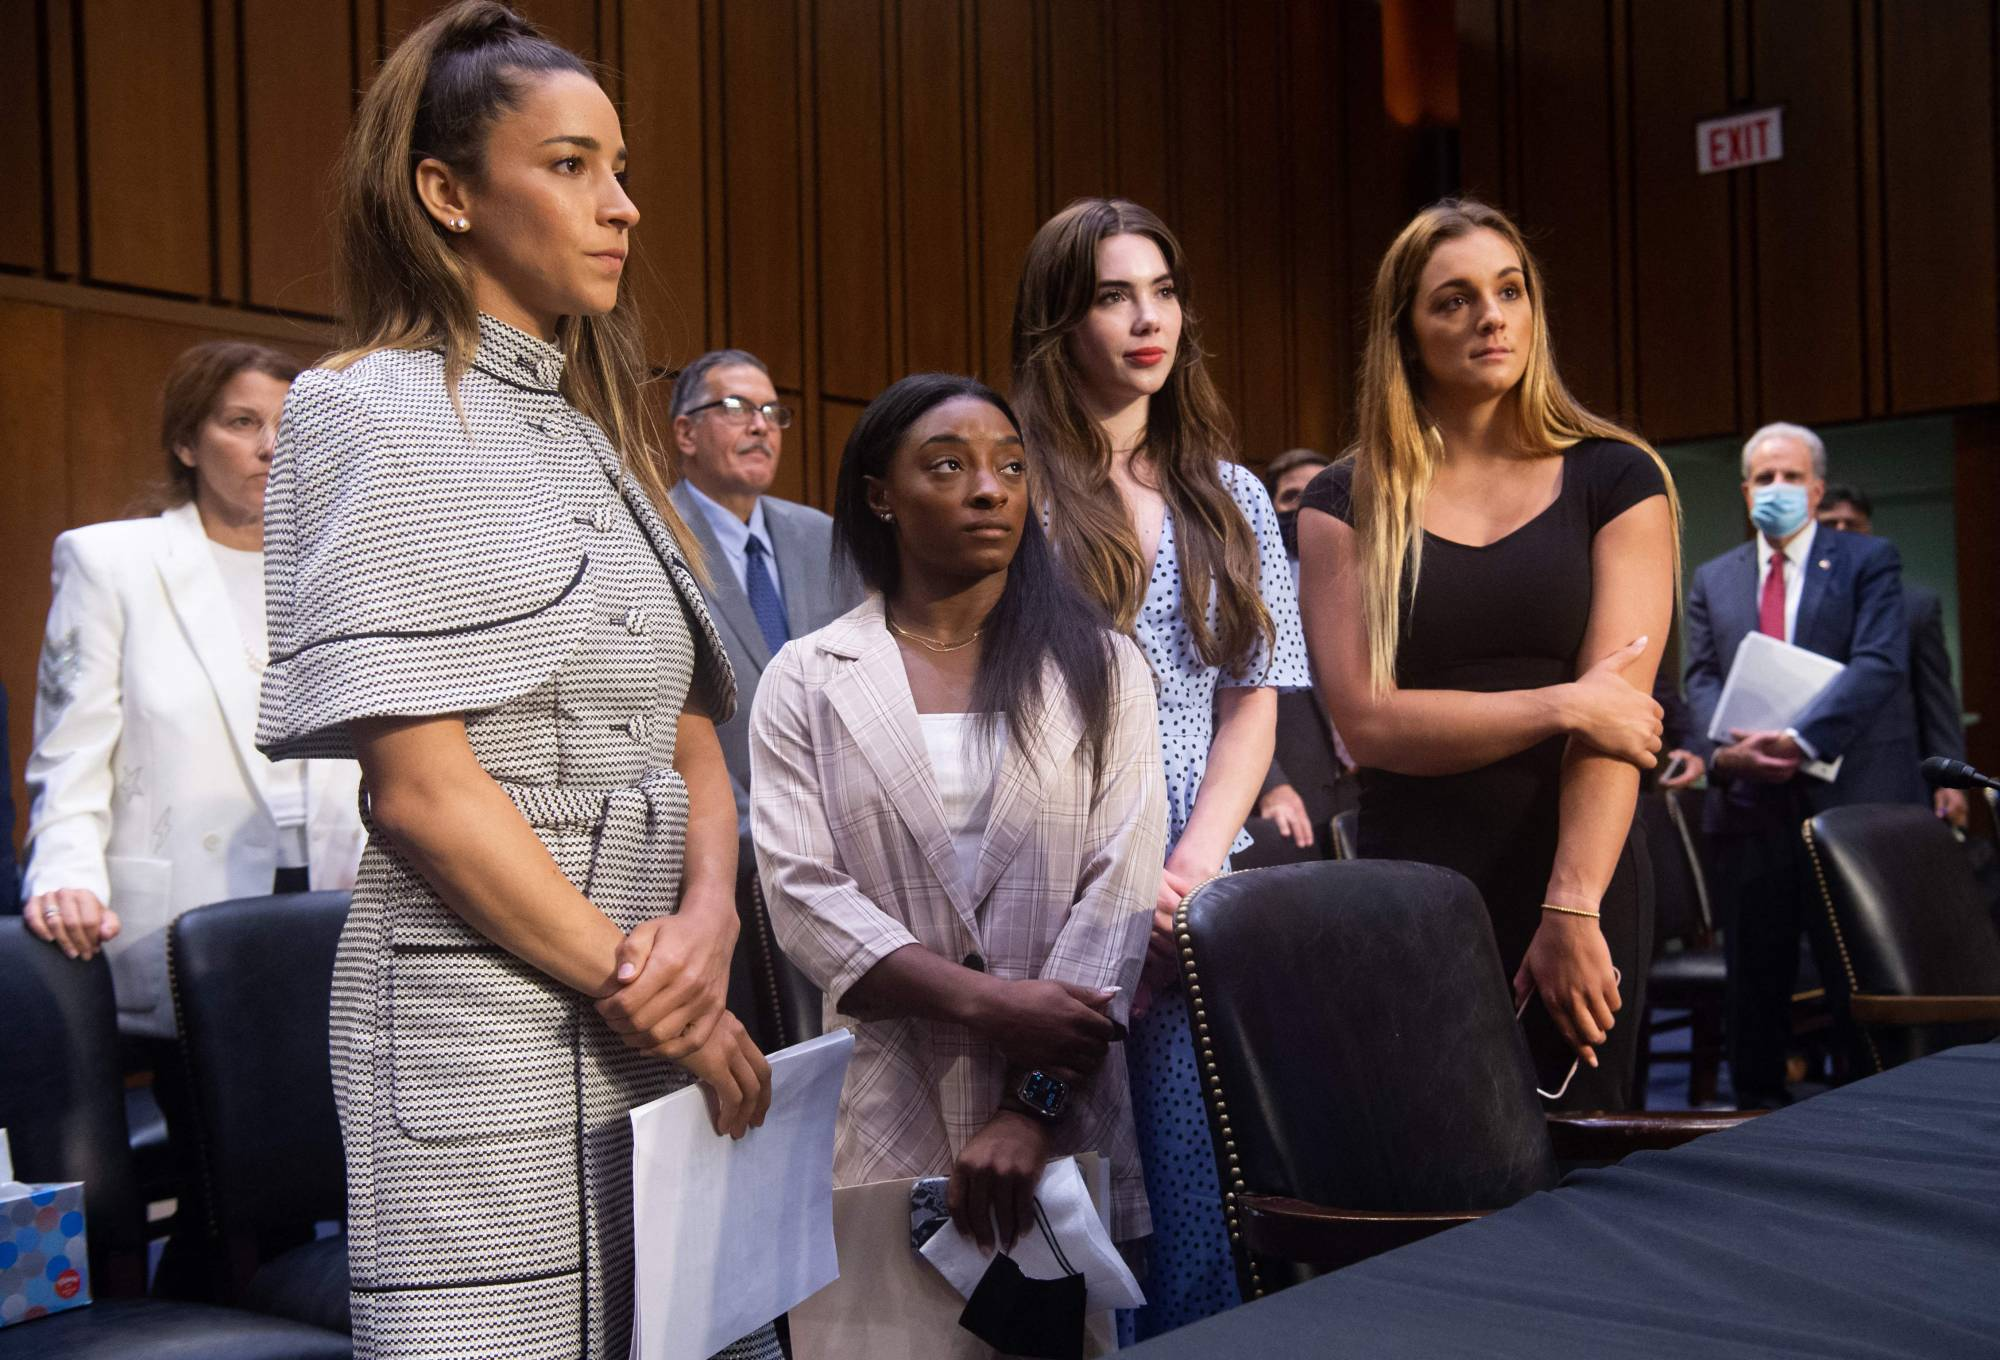 U.S. Olympic gymnasts (from left) Aly Raisman, Simone Biles, McKayla Maroney and Maggie Nichols leave after testifying during a Senate Judiciary hearing about the FBI's handling of the investigation into the sexual abuse of Olympic gymnasts. | AFP-JIJI